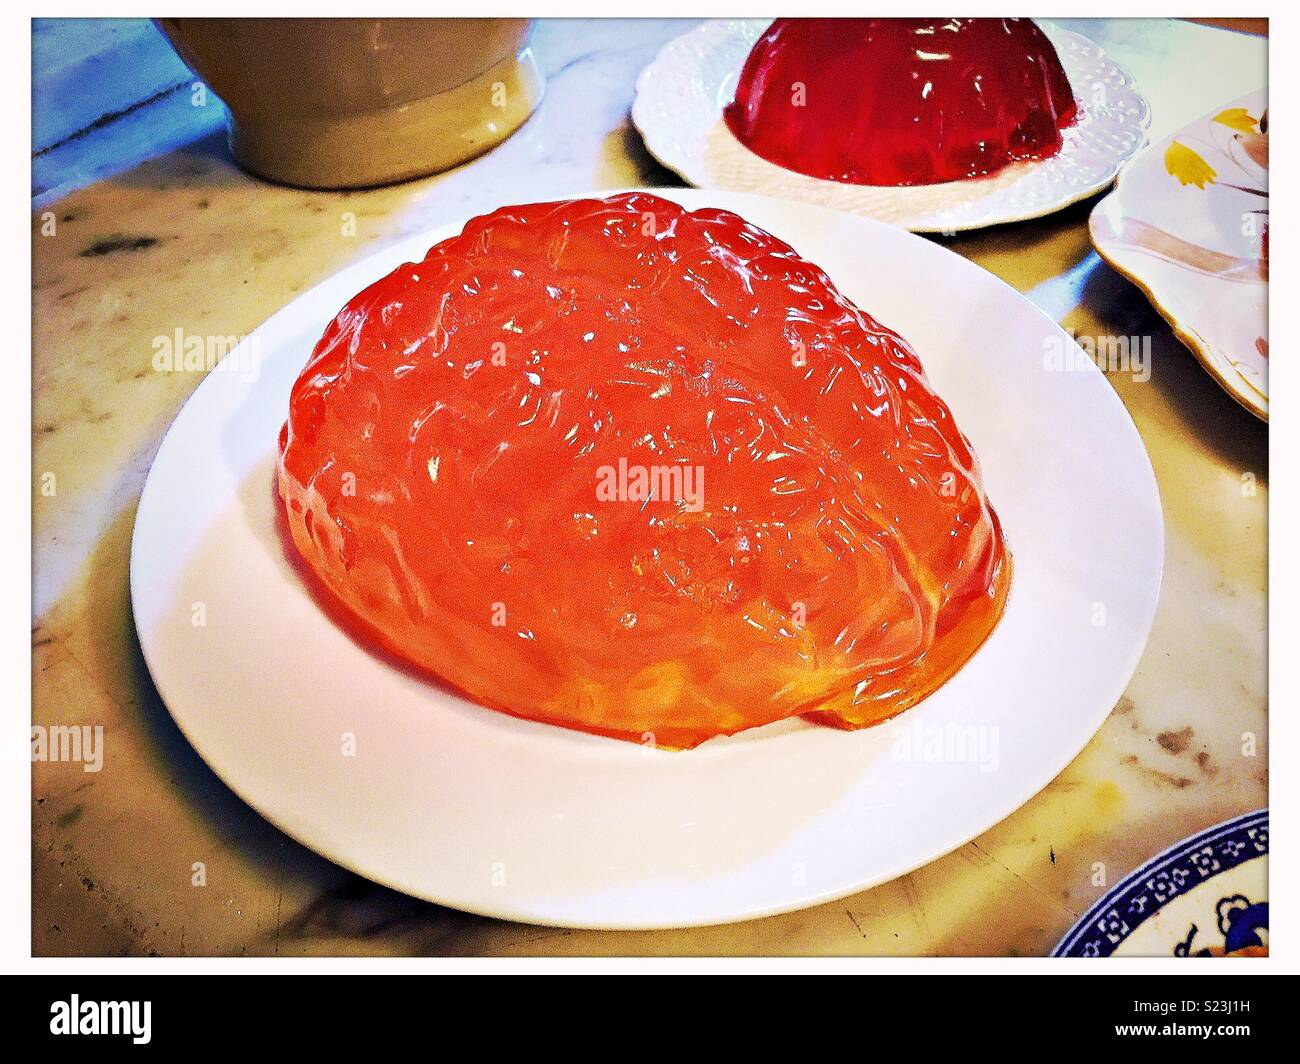 Brain made of jelly/jello on a plate. Stock Photo